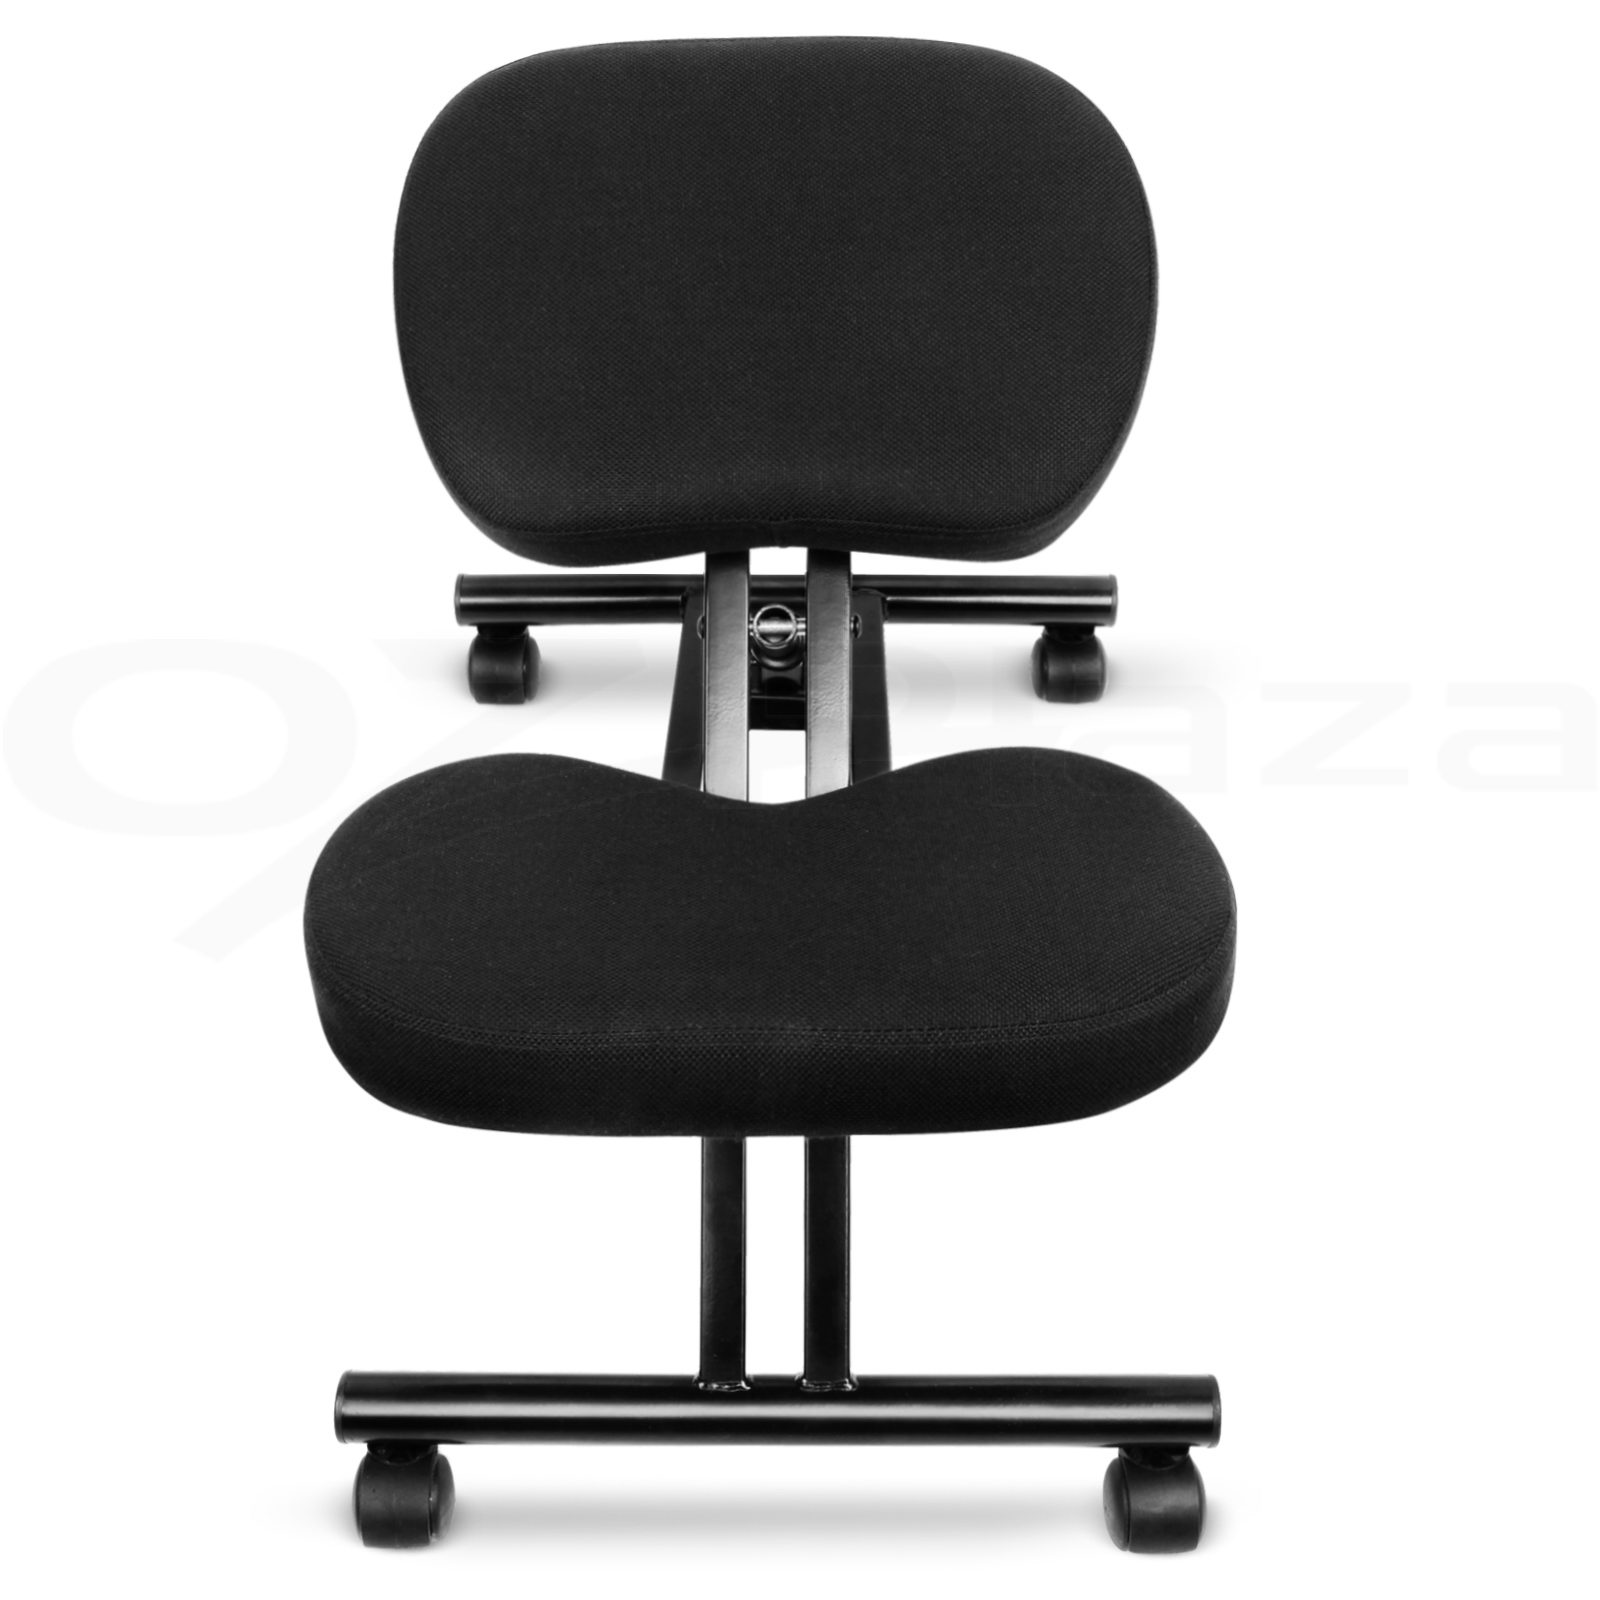 Adjustable Kneeling Chair Office Stool Stretch Knee Yoga